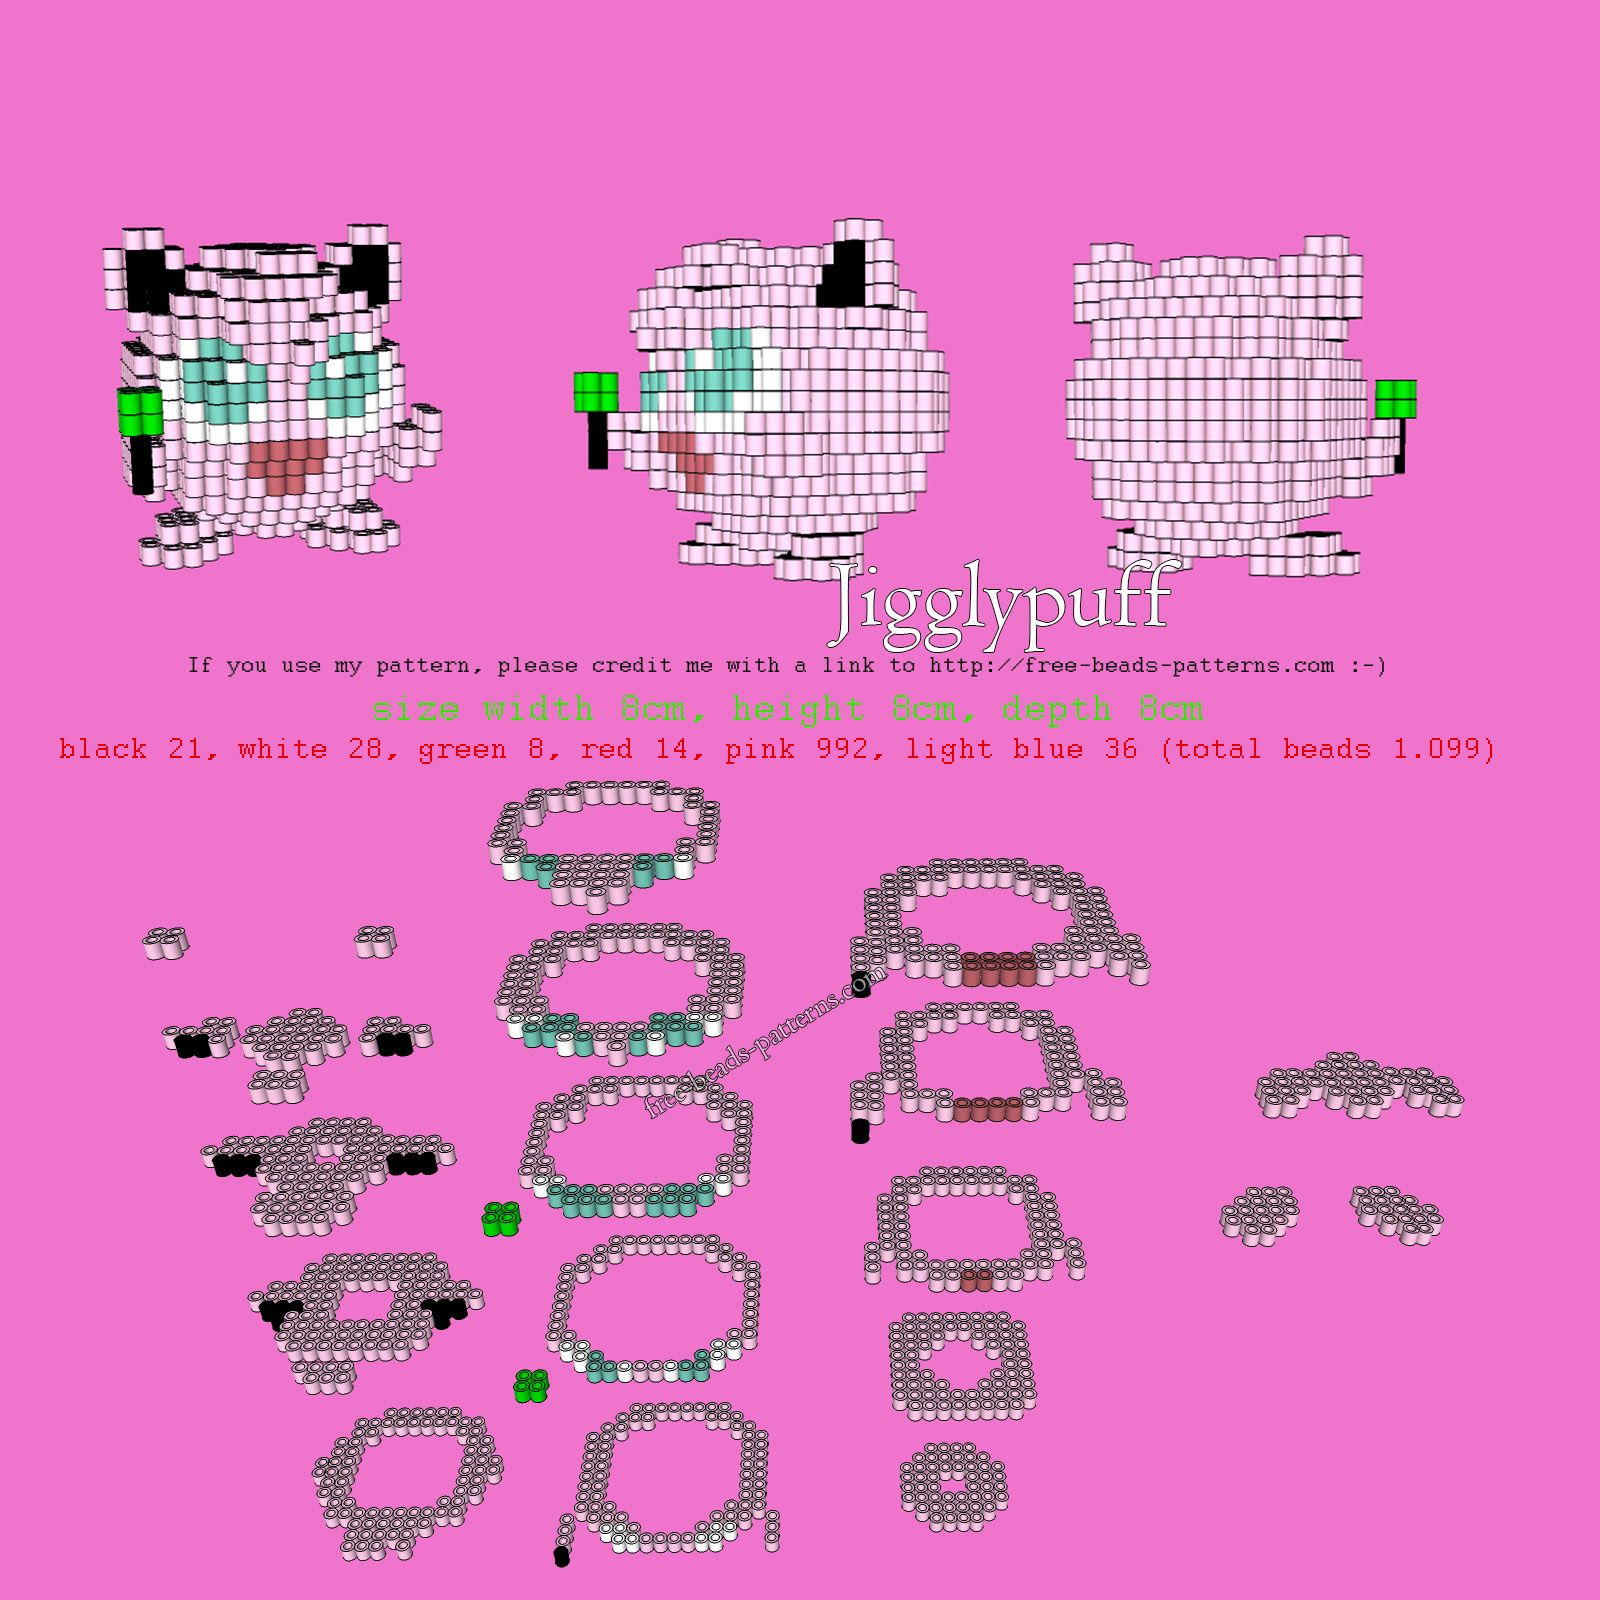 3D Pokemon Jigglypuff perler beads hama beads free pattern ... - photo#8